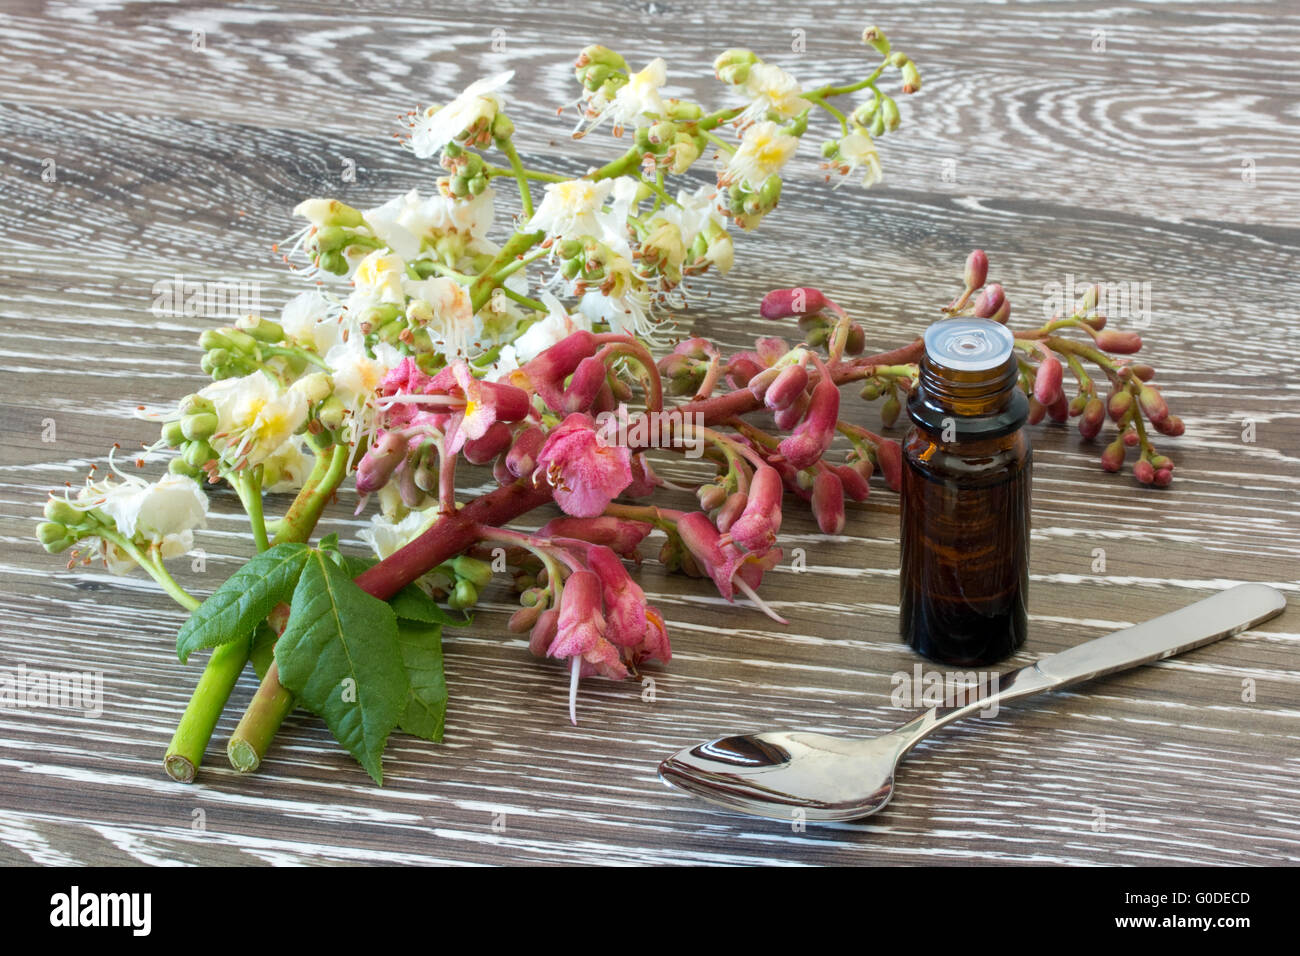 Bach flower remedies of red and white chestnut stock photo royalty bach flower remedies of red and white chestnut mightylinksfo Image collections